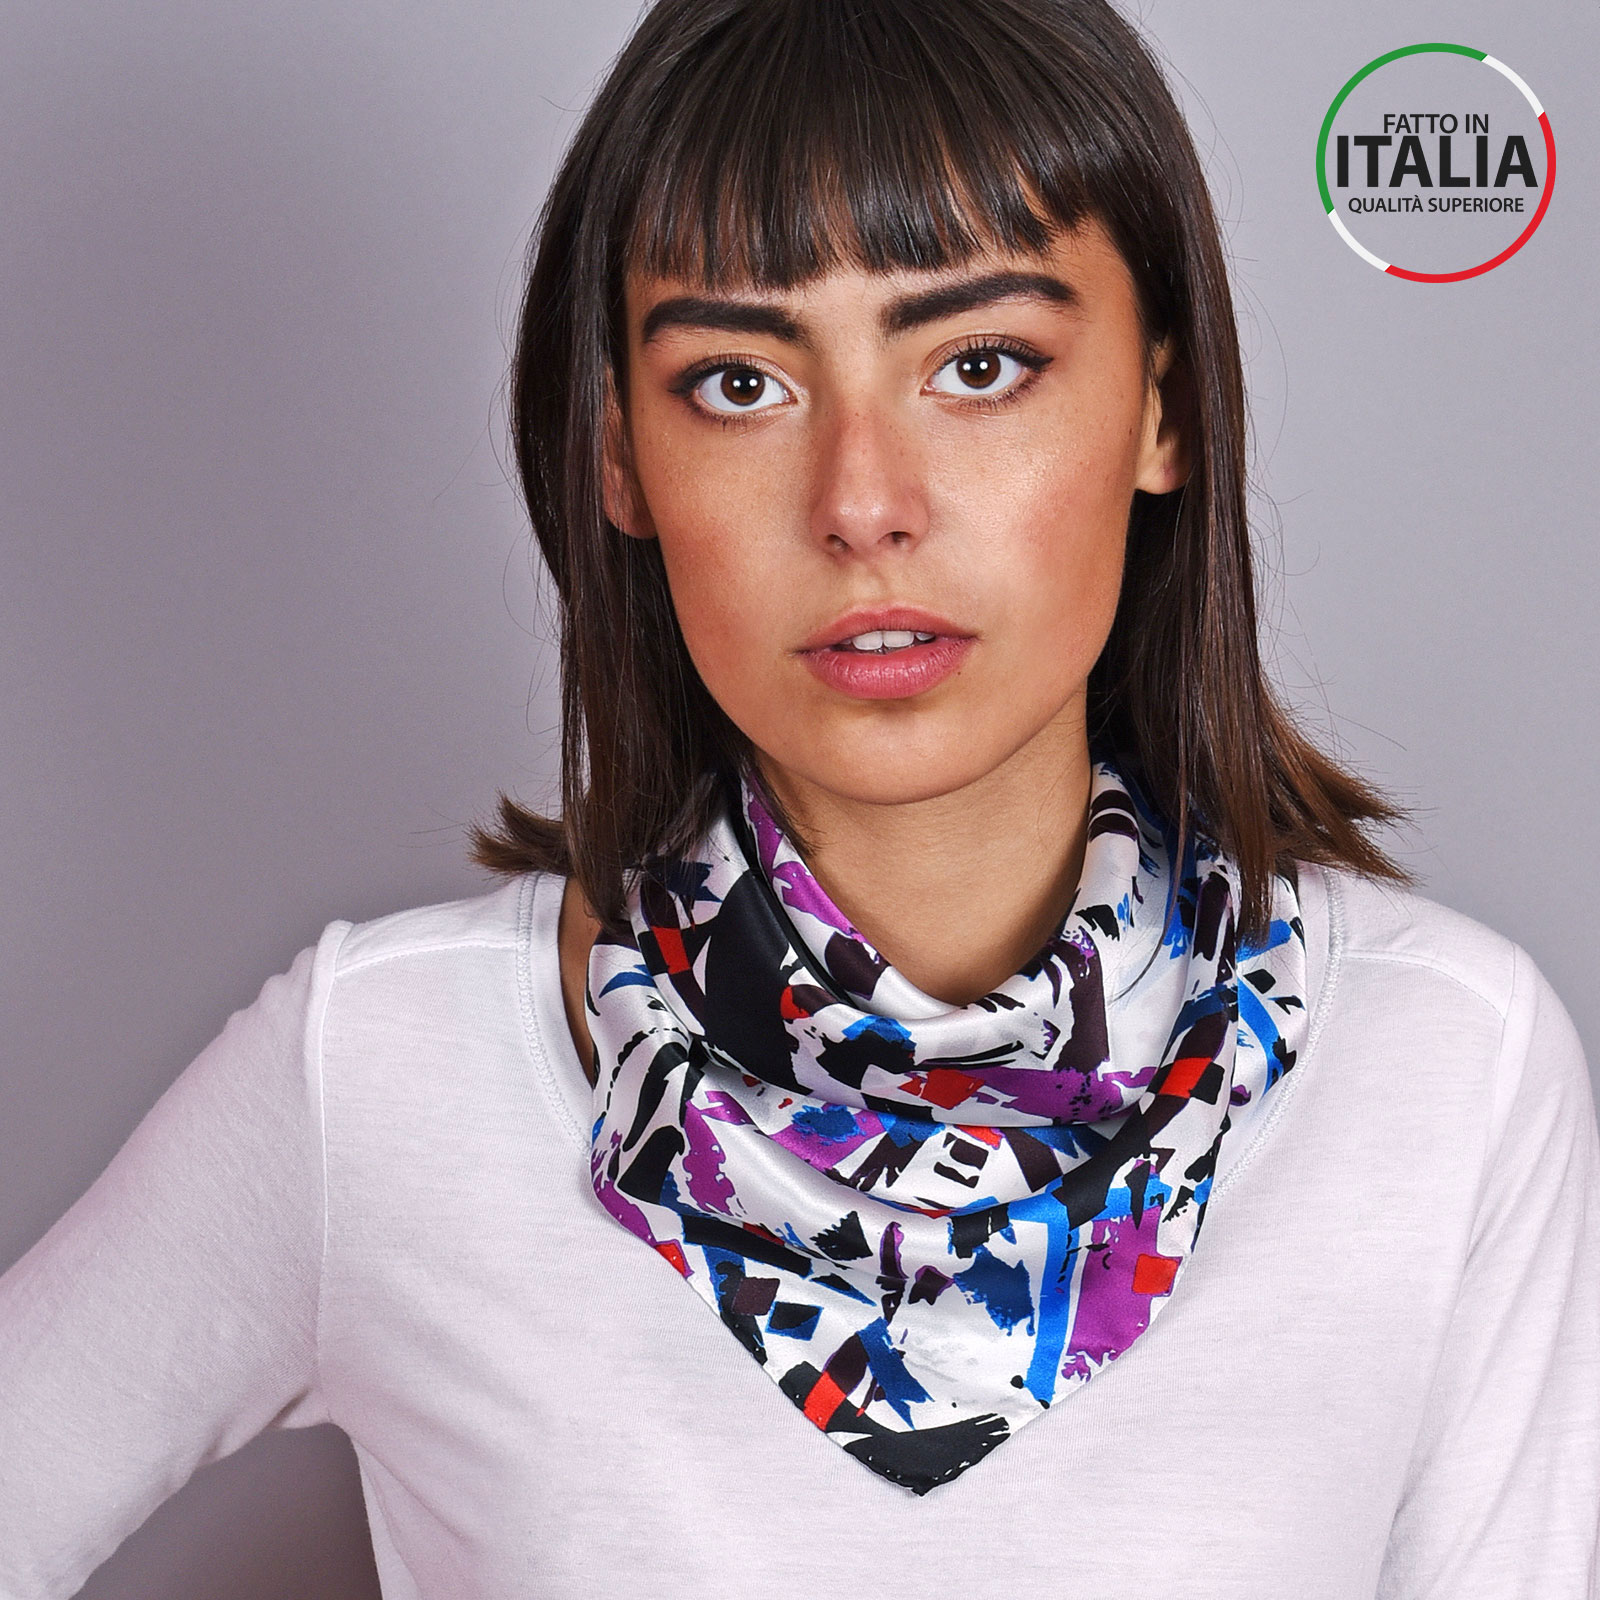 AT-04605-VF16-LB_IT-1-foulard-carre-soie-blanc-abstrait-65x65-made-in-italie